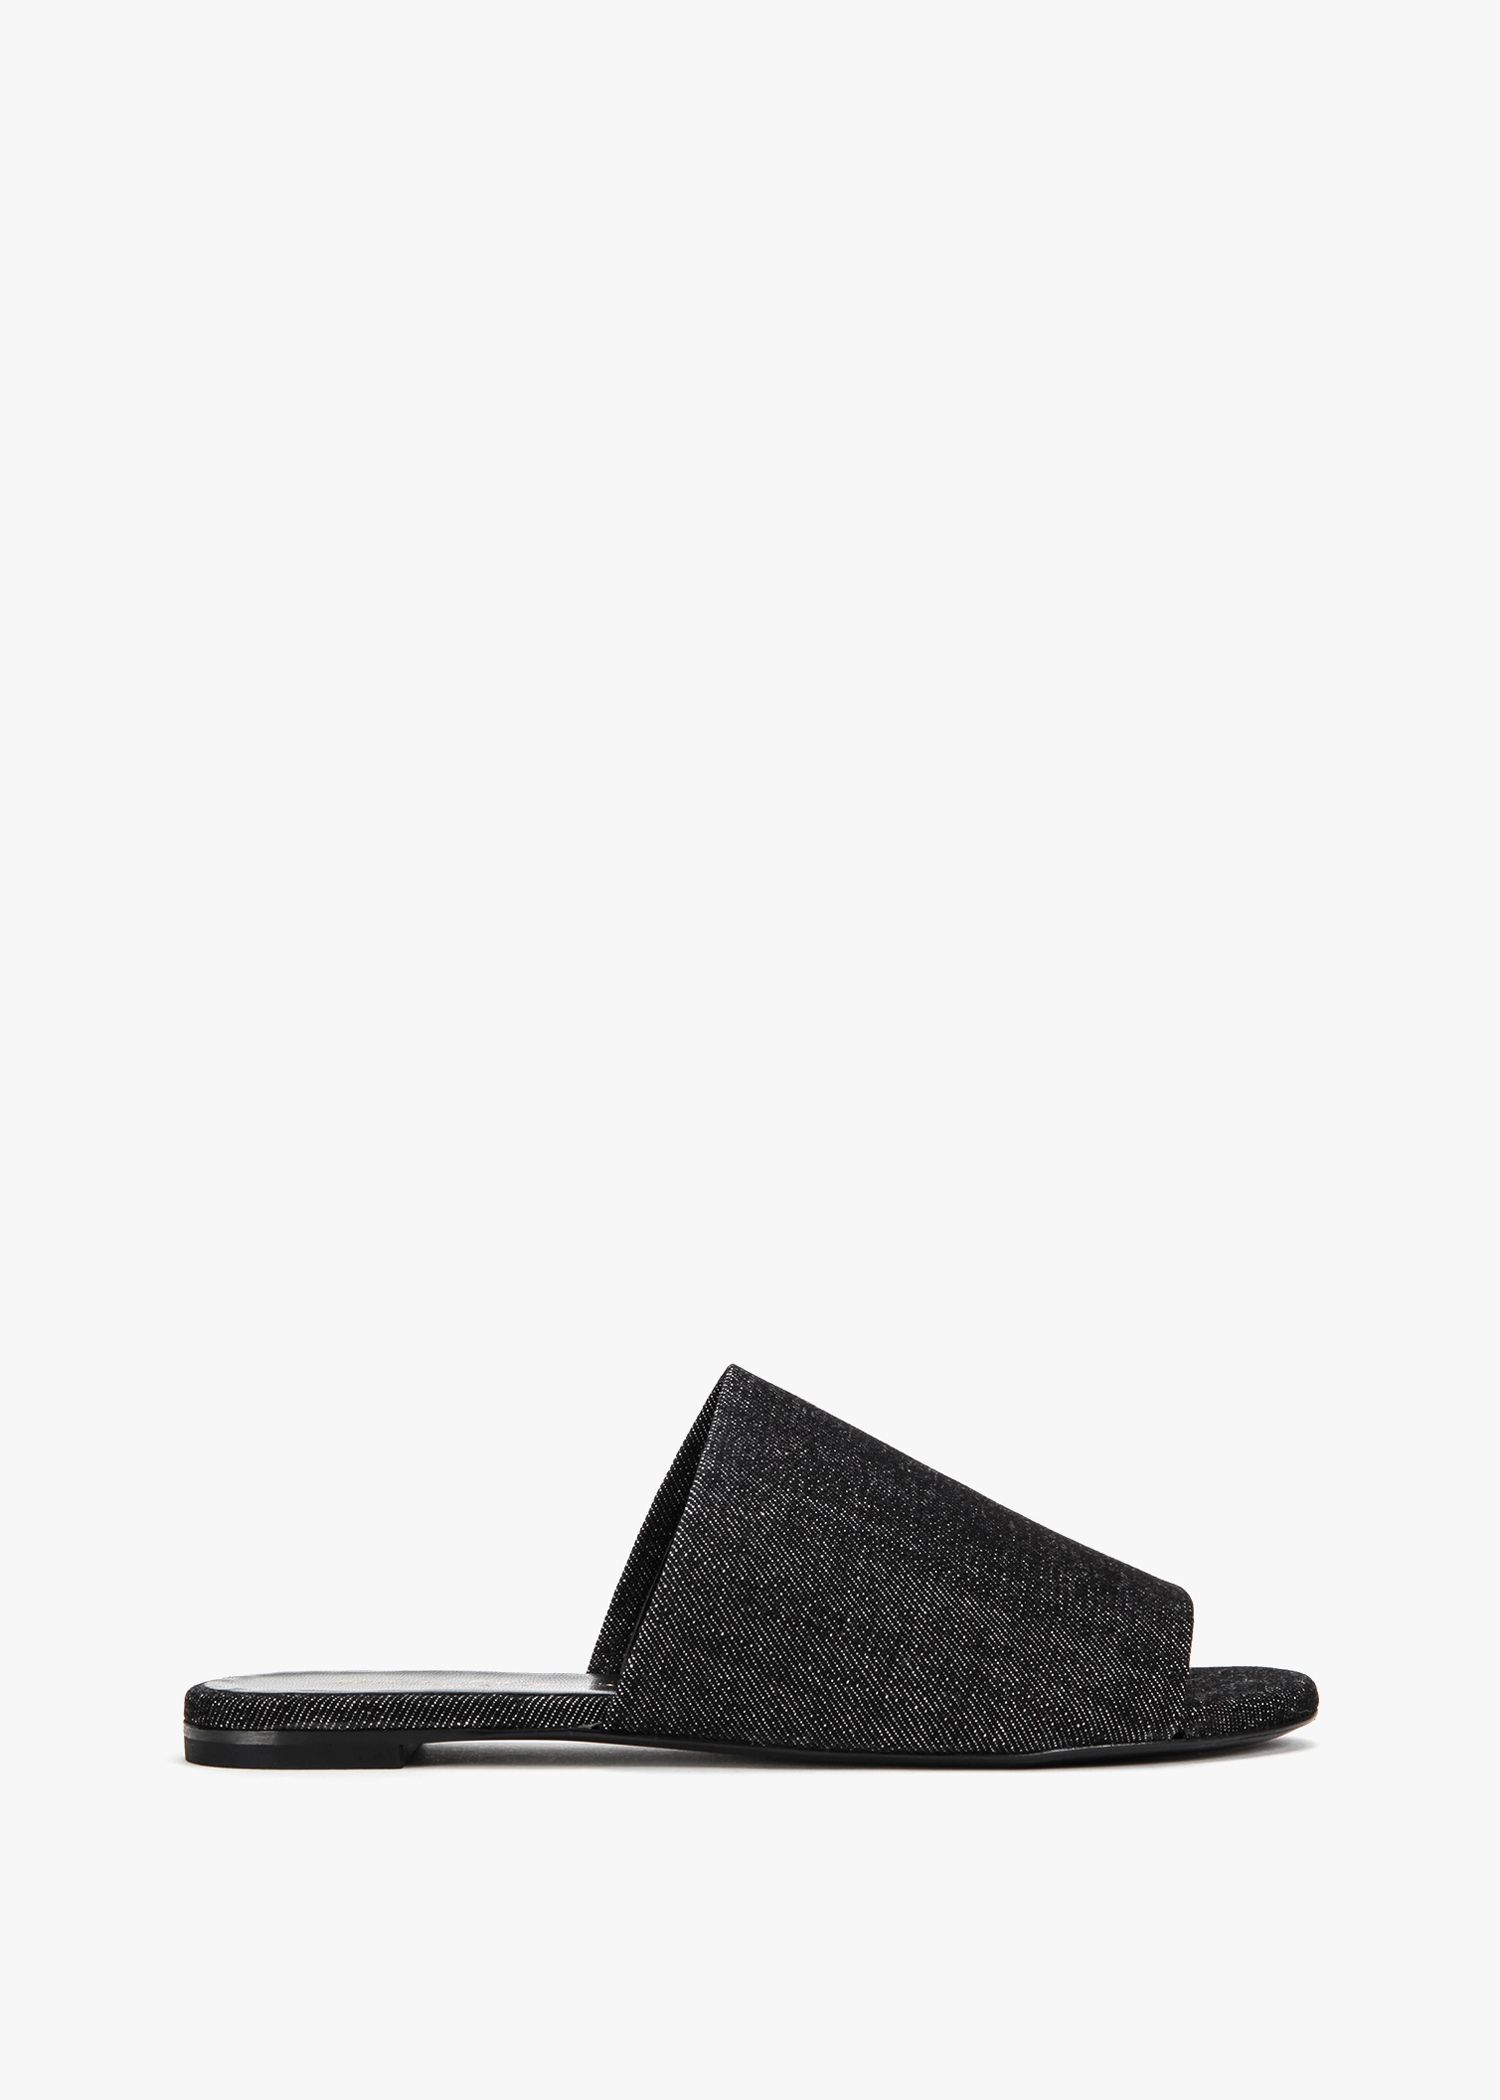 00cc35dc4 ROBERT CLERGERIE GIGY DENIM TOE OPEN SLIDES.  robertclergerie  shoes ...